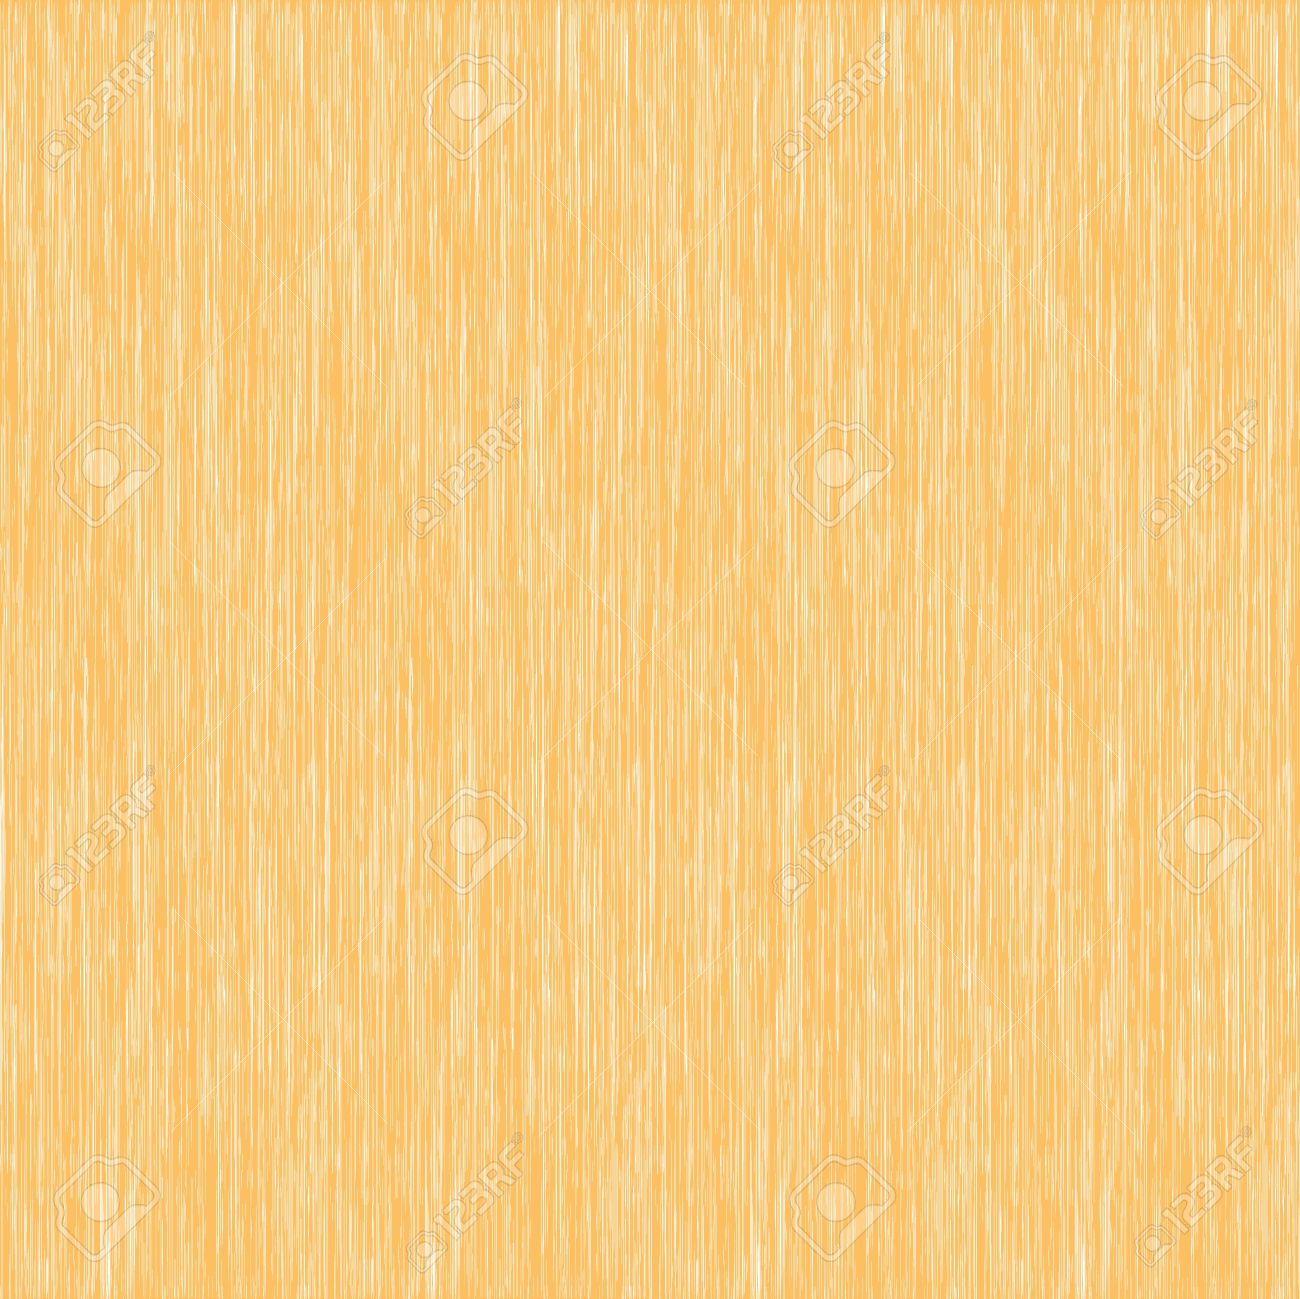 Light Wood Background Pattern Texture Royalty Free Cliparts, Vectors ... for Background Pattern Light Orange  56bof